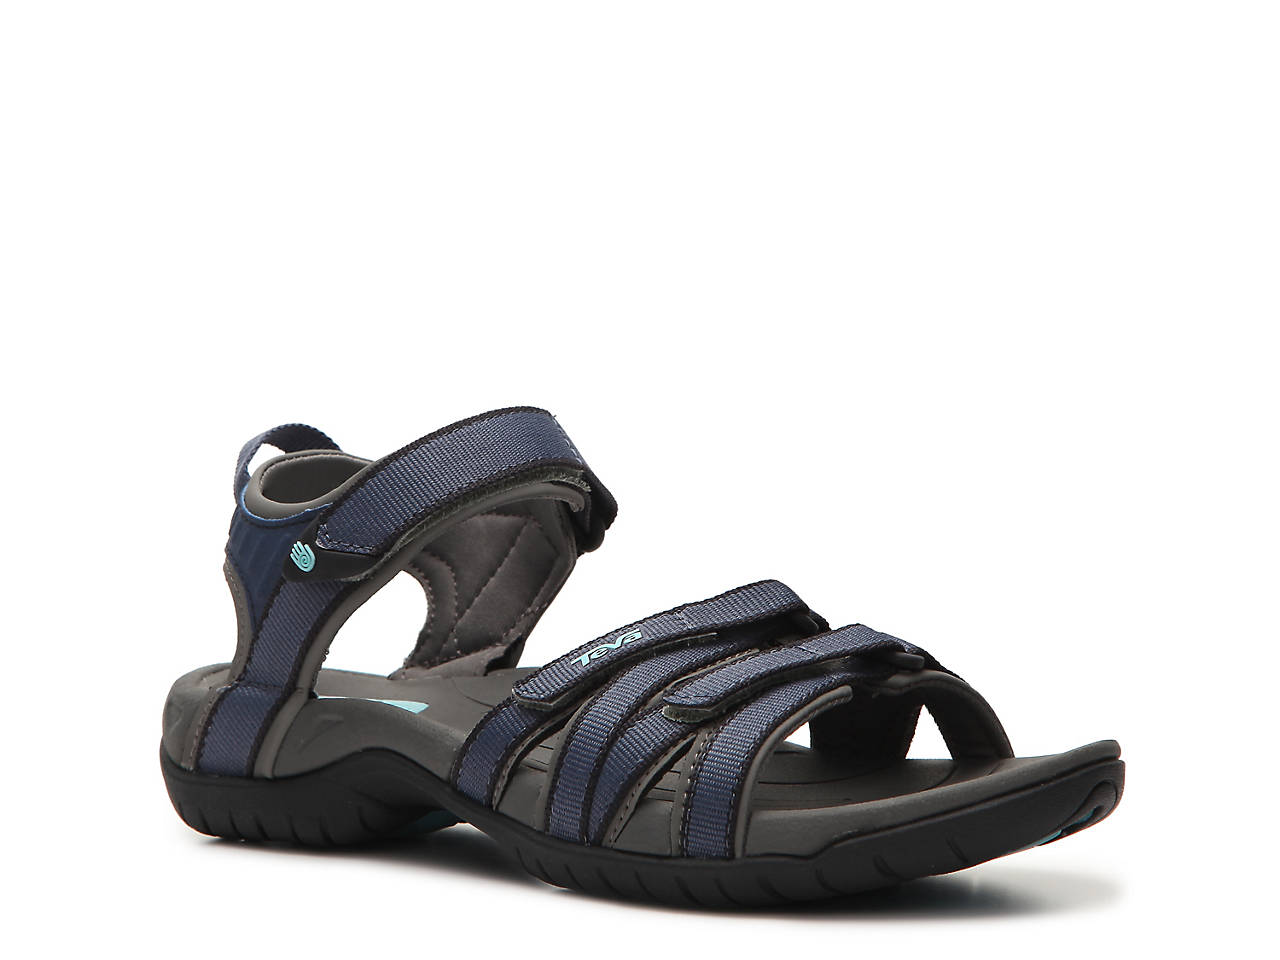 232ed9028914 Teva Tirra Sport Sandal Women s Shoes